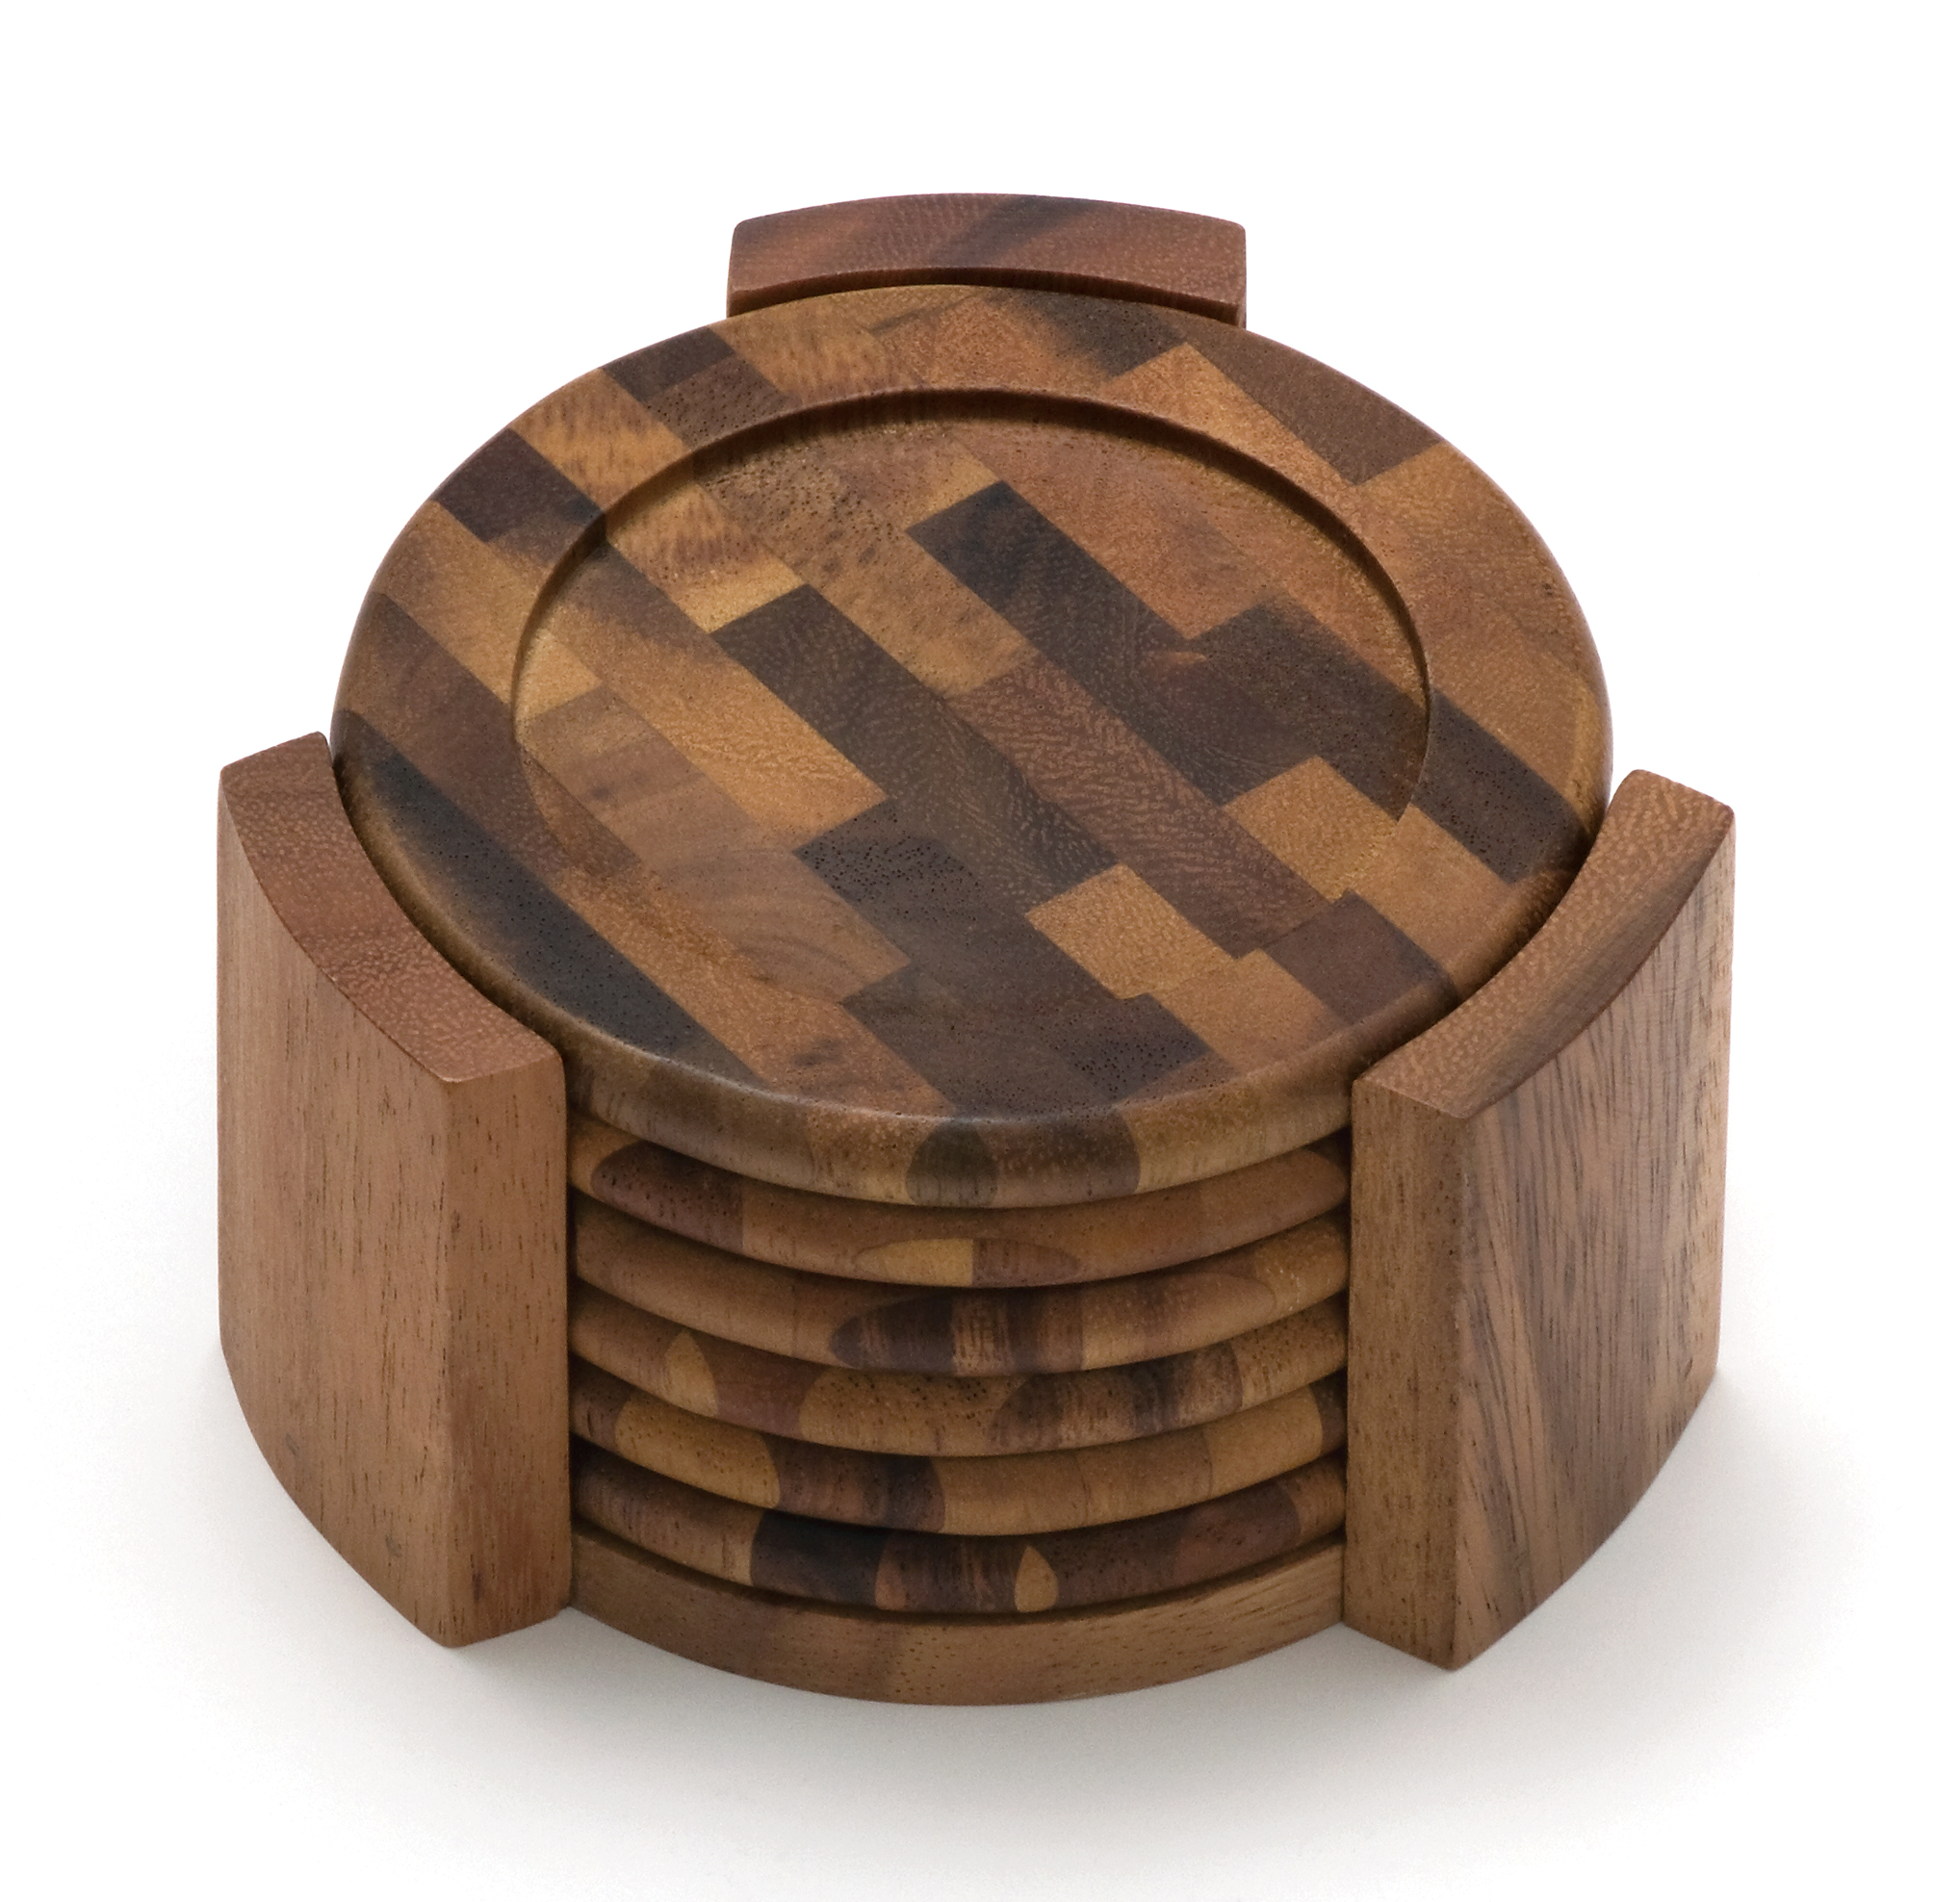 Wood Coaster Holder All Collections Lipper International Inc